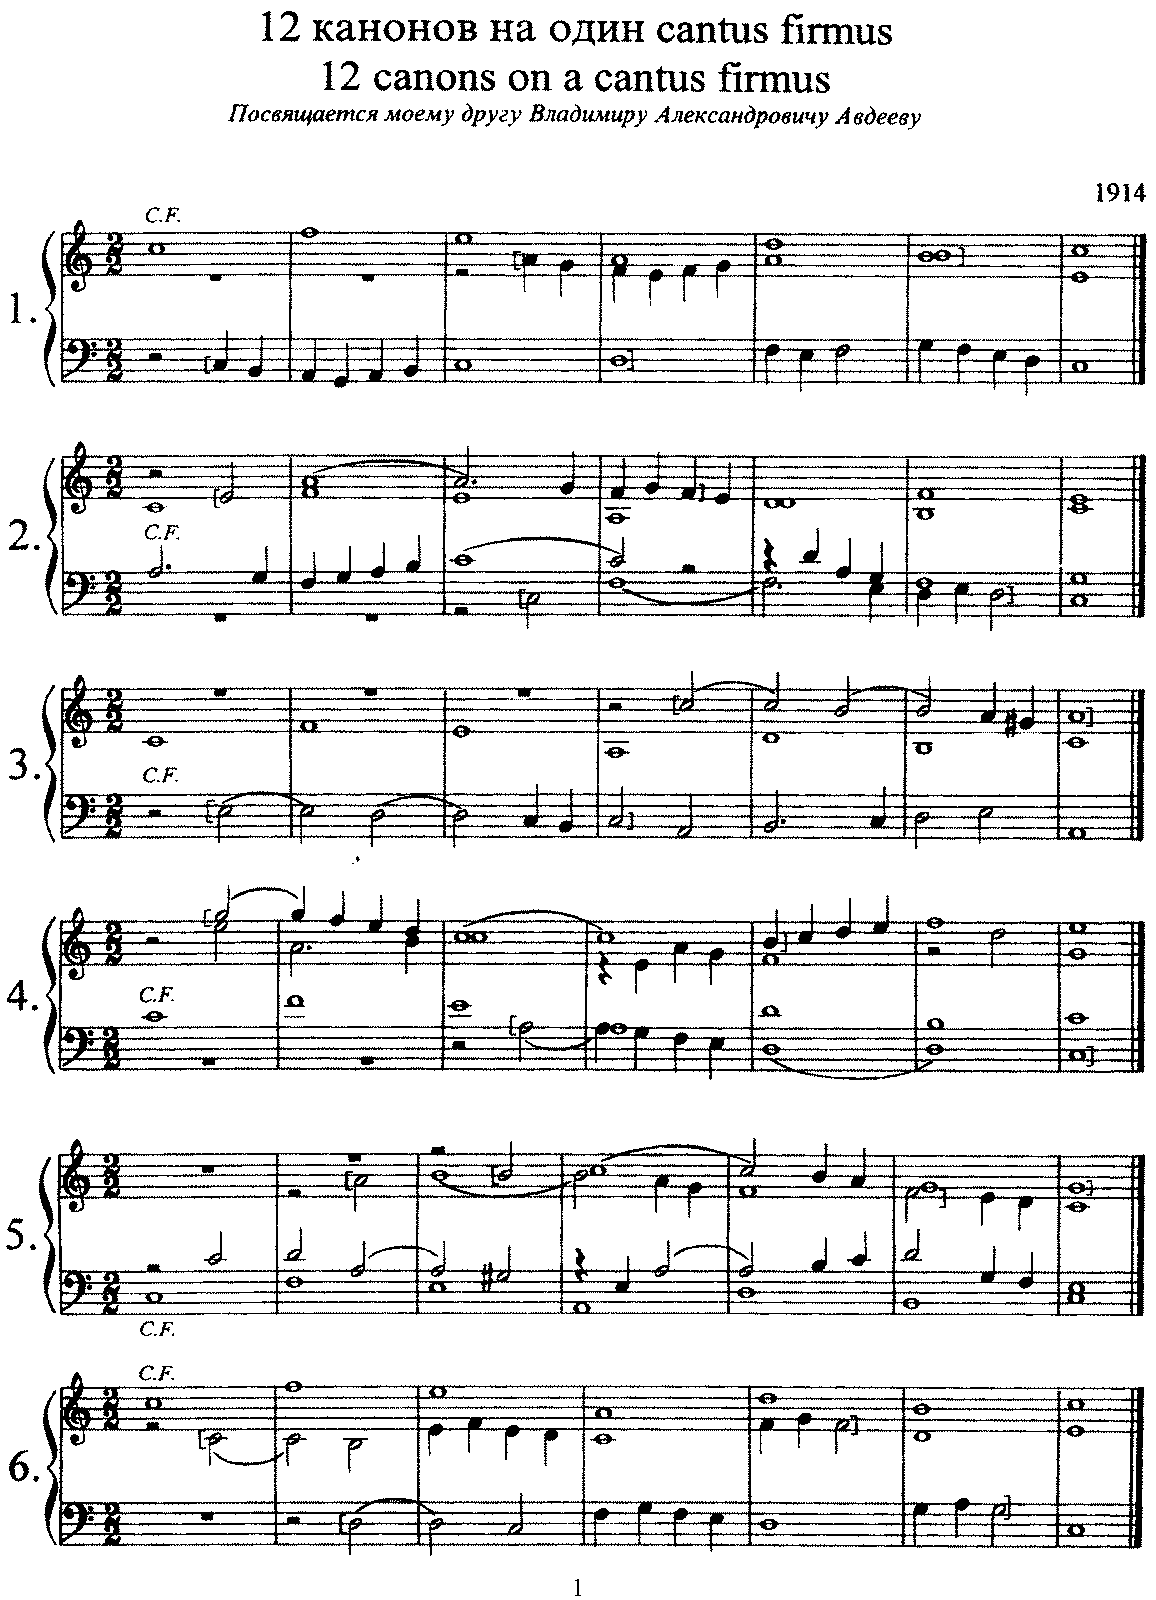 Liadov - Op.misc - 12 Canons on a Cantus Firmus (1914).pdf